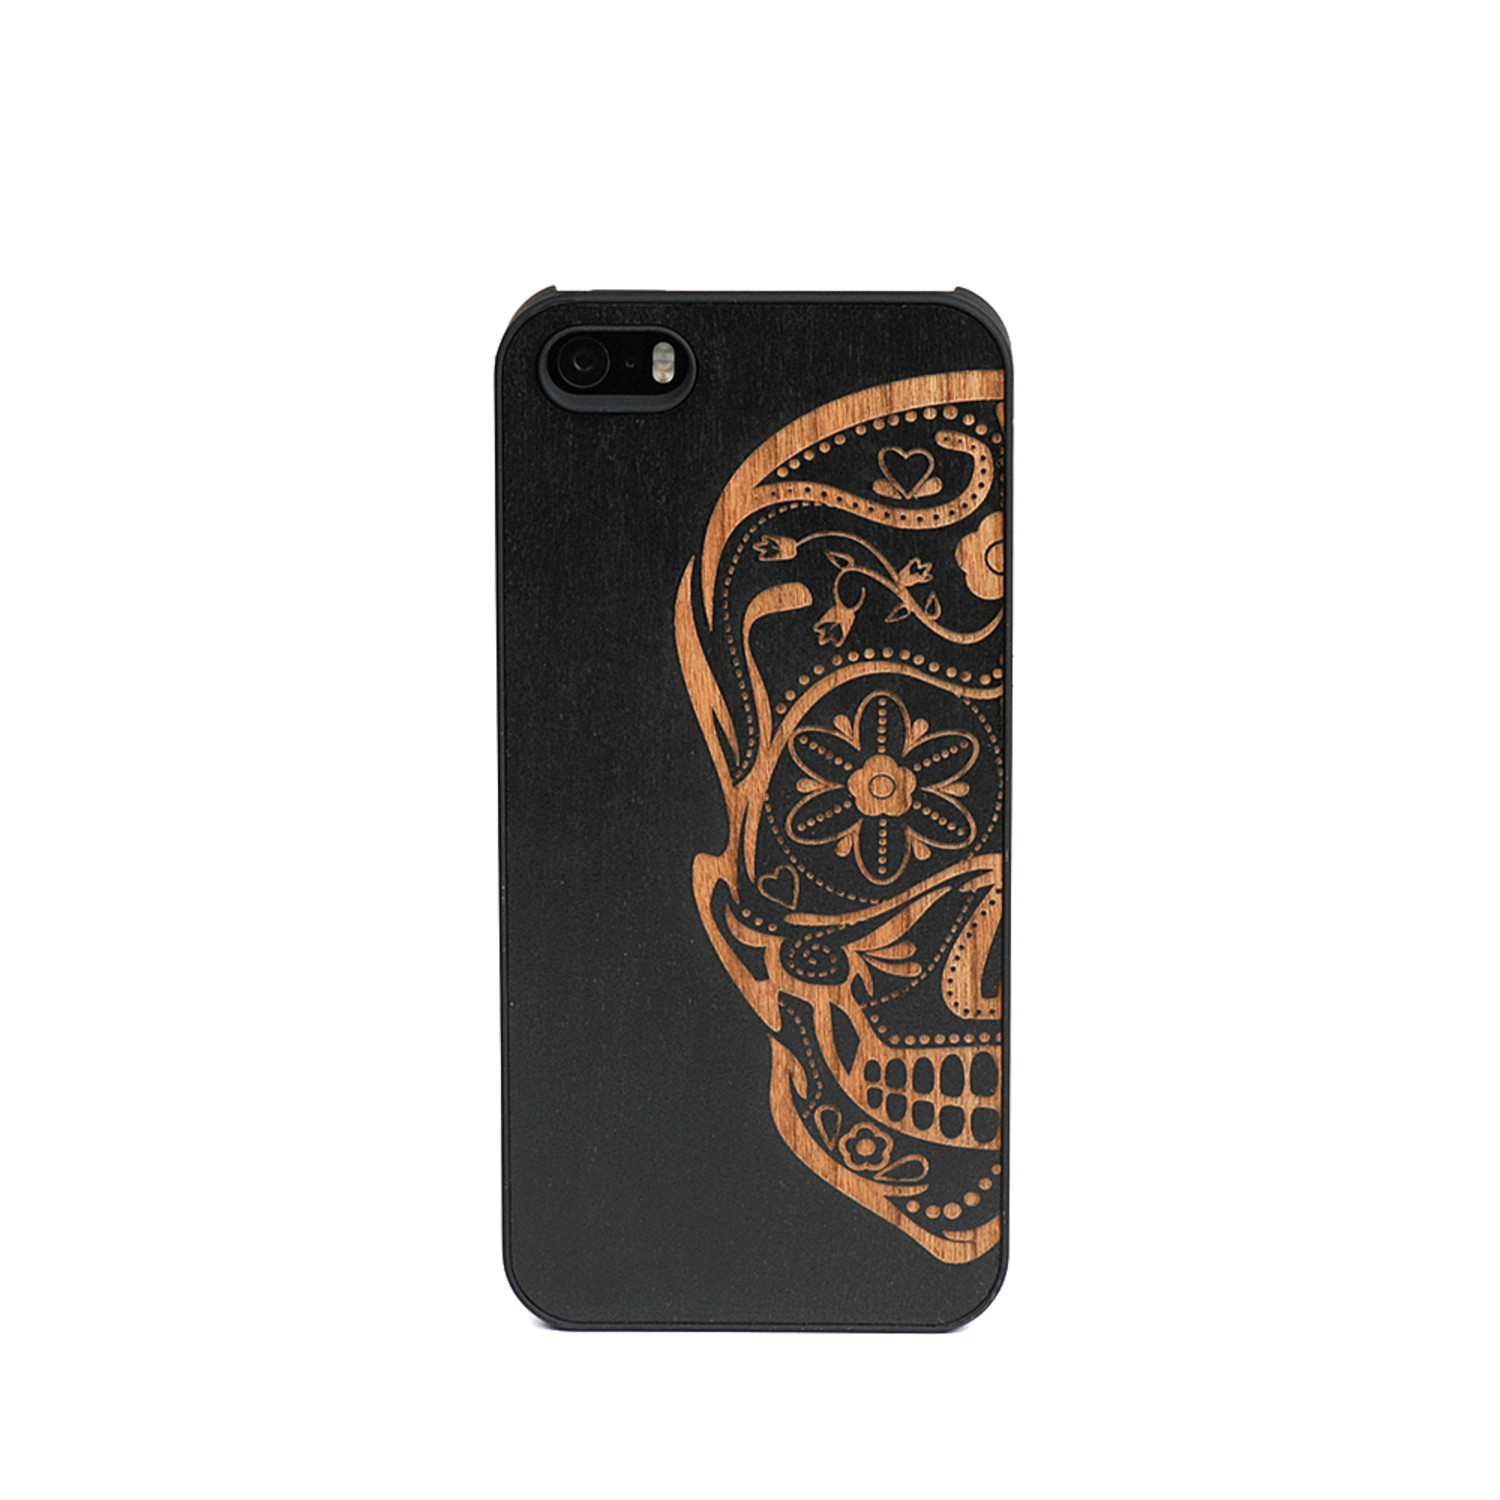 set up email on iphone sugar skull snap black iphone 6 lazerwood 3008